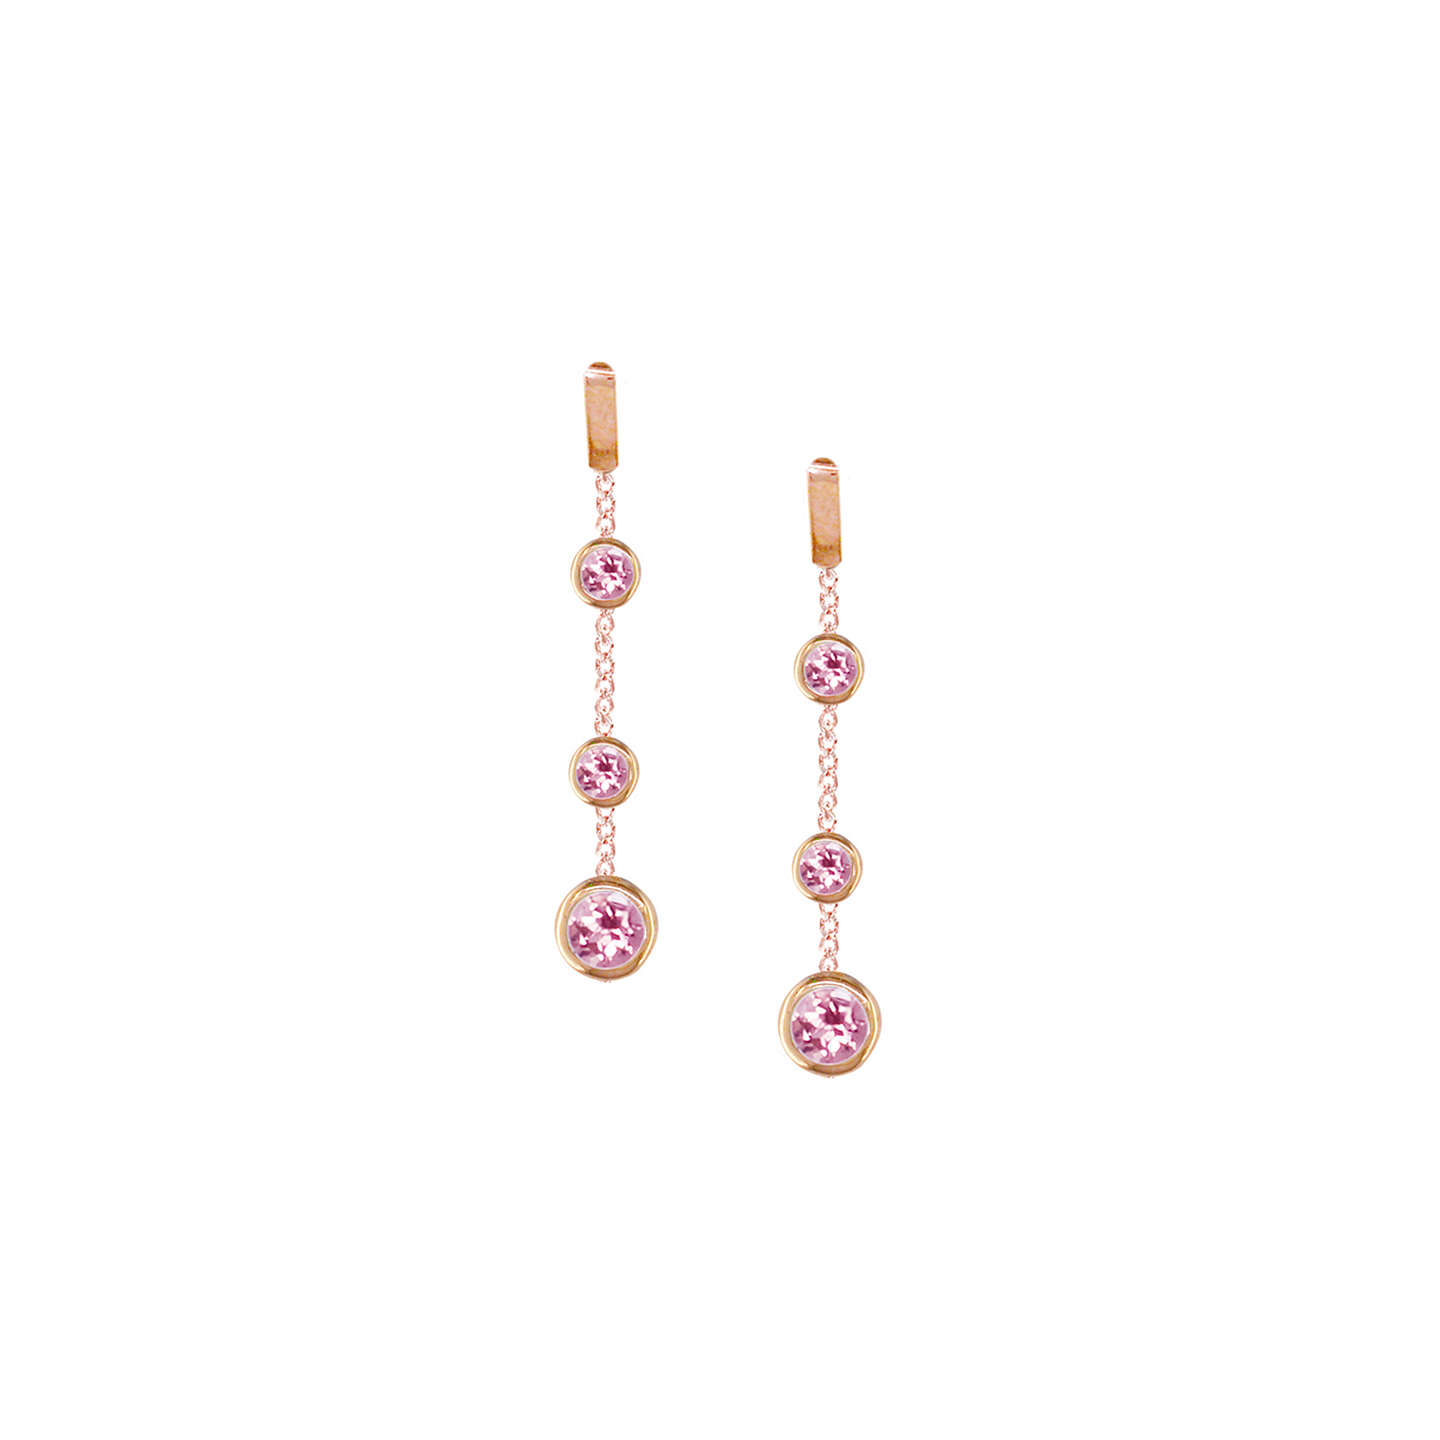 BuyLondon Road 9ct Rose Gold Pimlico Dew Drop Chain Earrings, Tourmaline Online at johnlewis.com